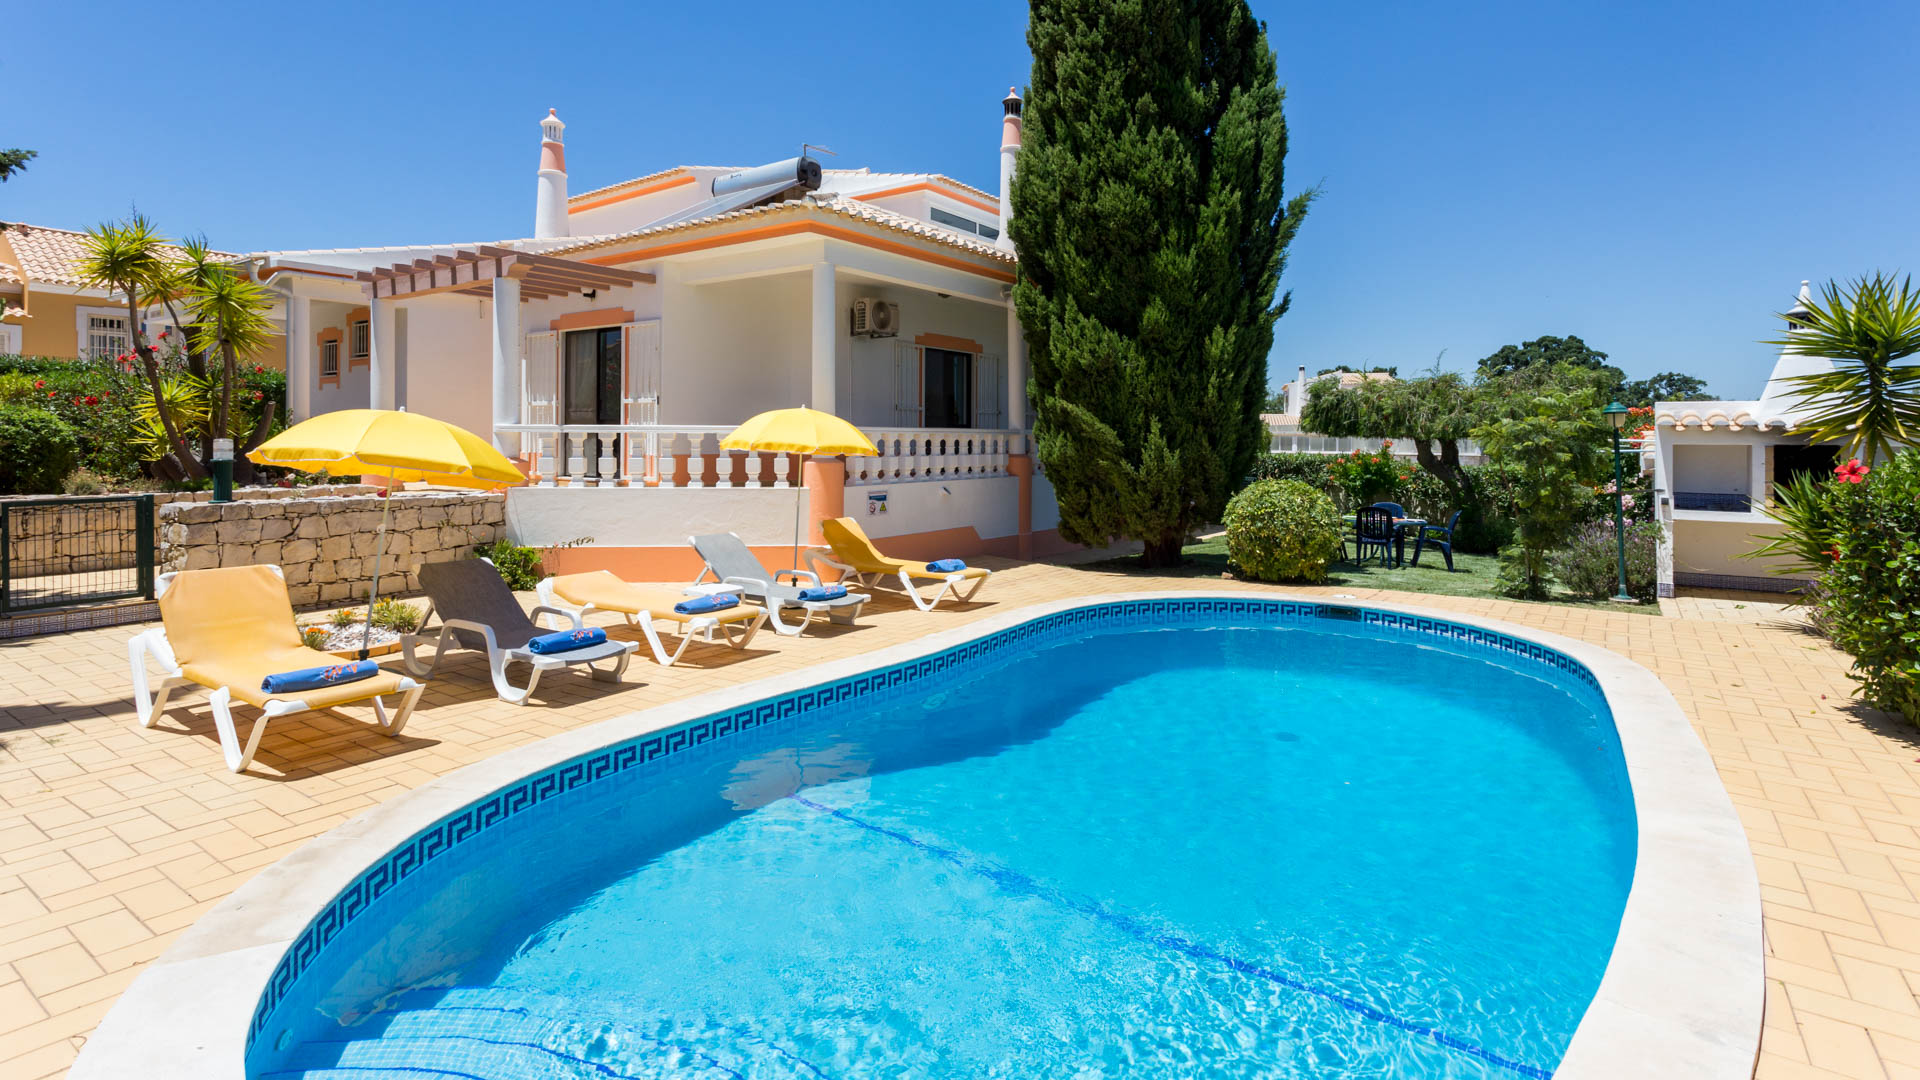 Villa Albufeira LS418, Wonderful and cheerful villa in Albufeira, on the Algarve, Portugal  with private pool for 6 persons.....